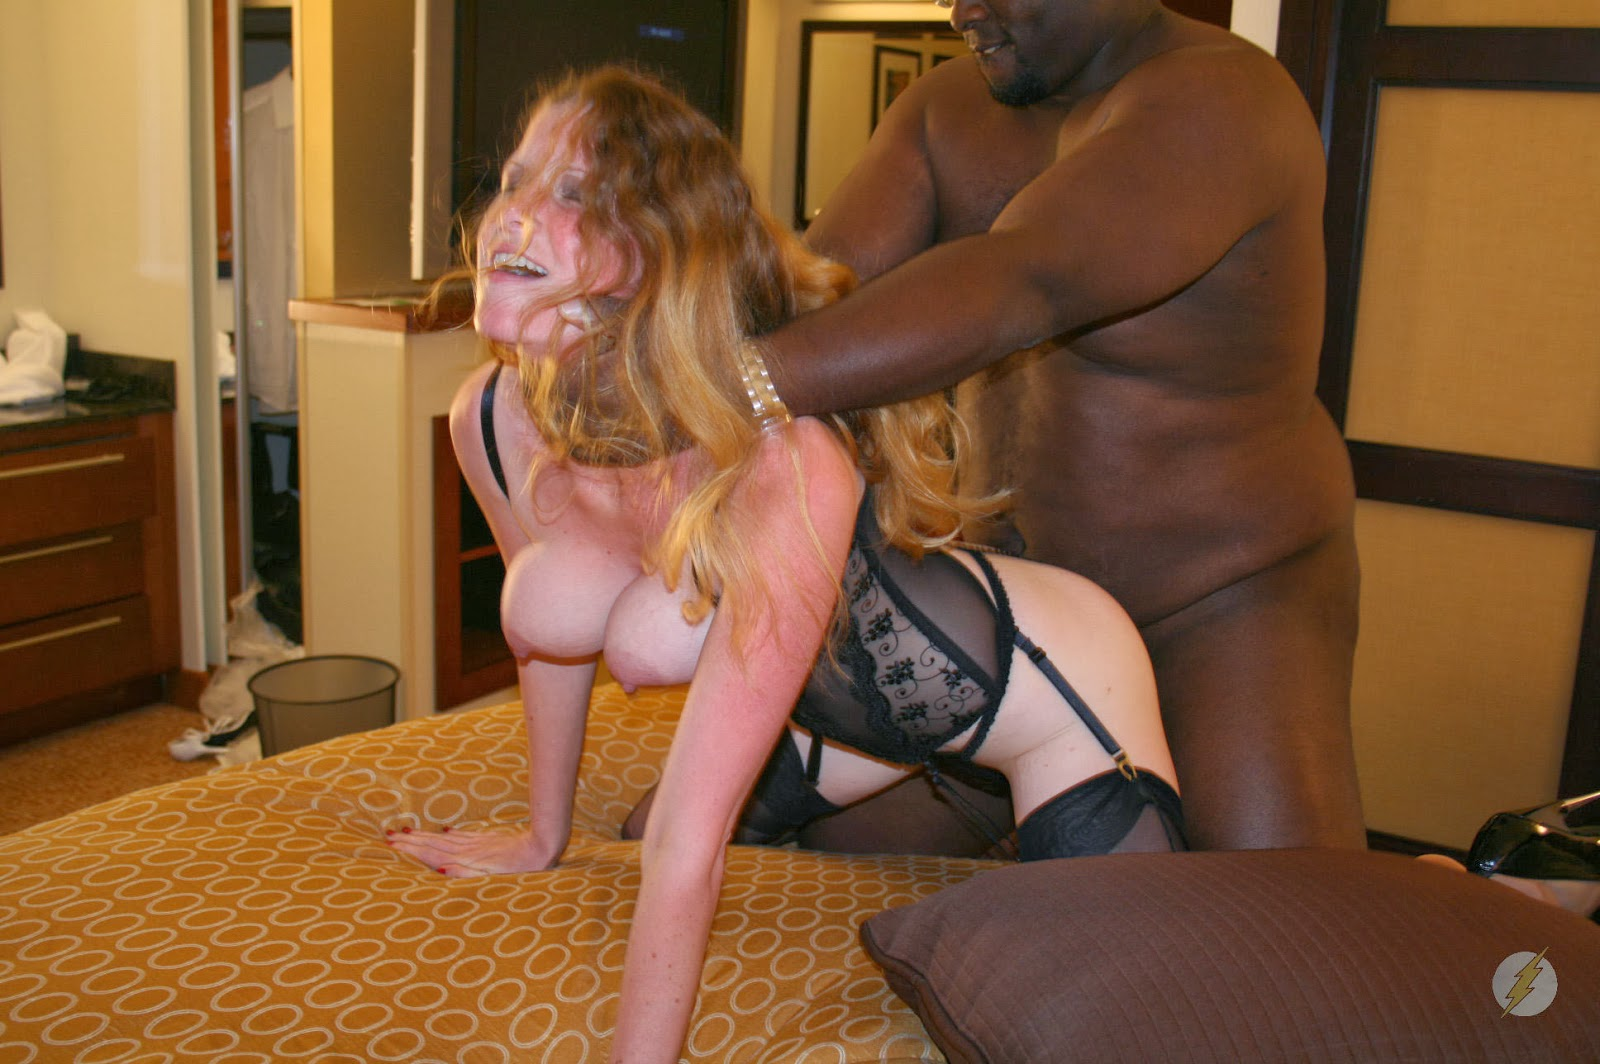 Black bull fucks busty white mom in front of her son 3